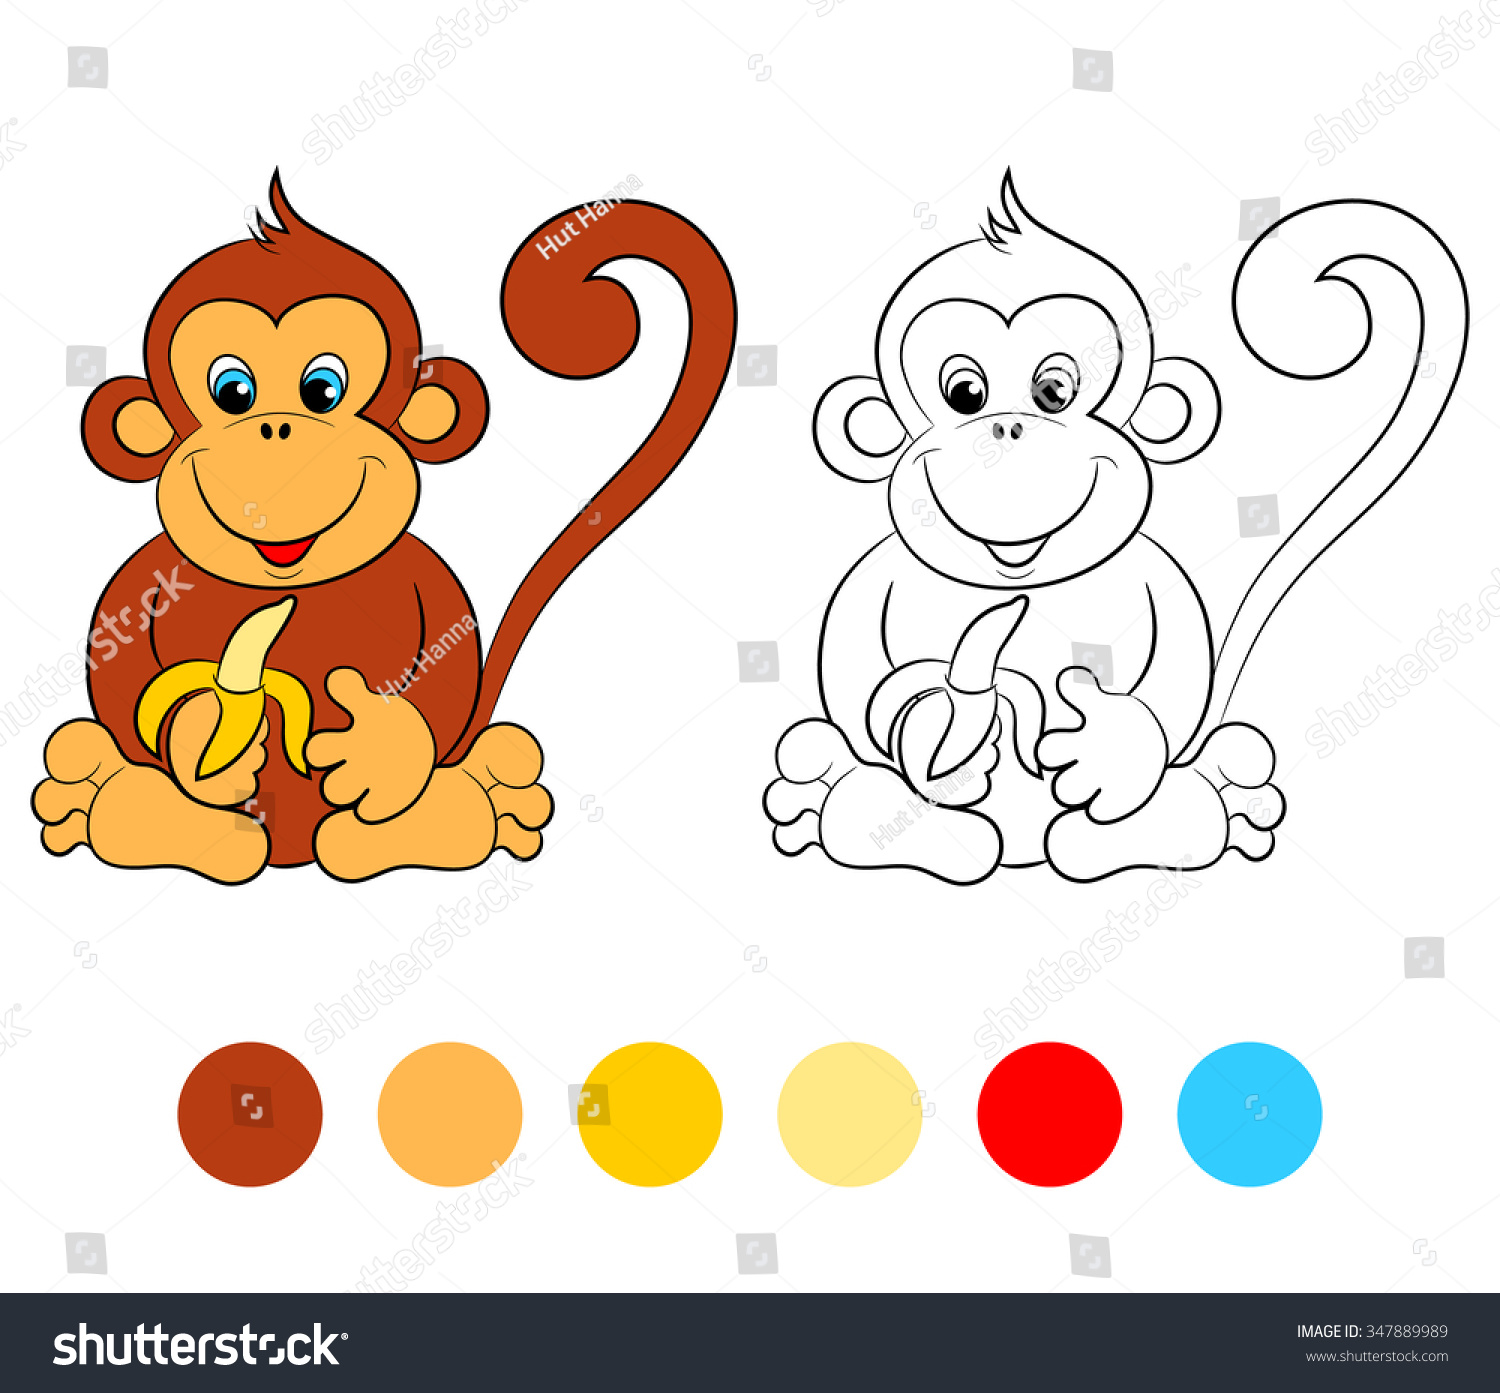 Coloring Book Monkey Kids Layout Game Stock Photo (Photo, Vector ...